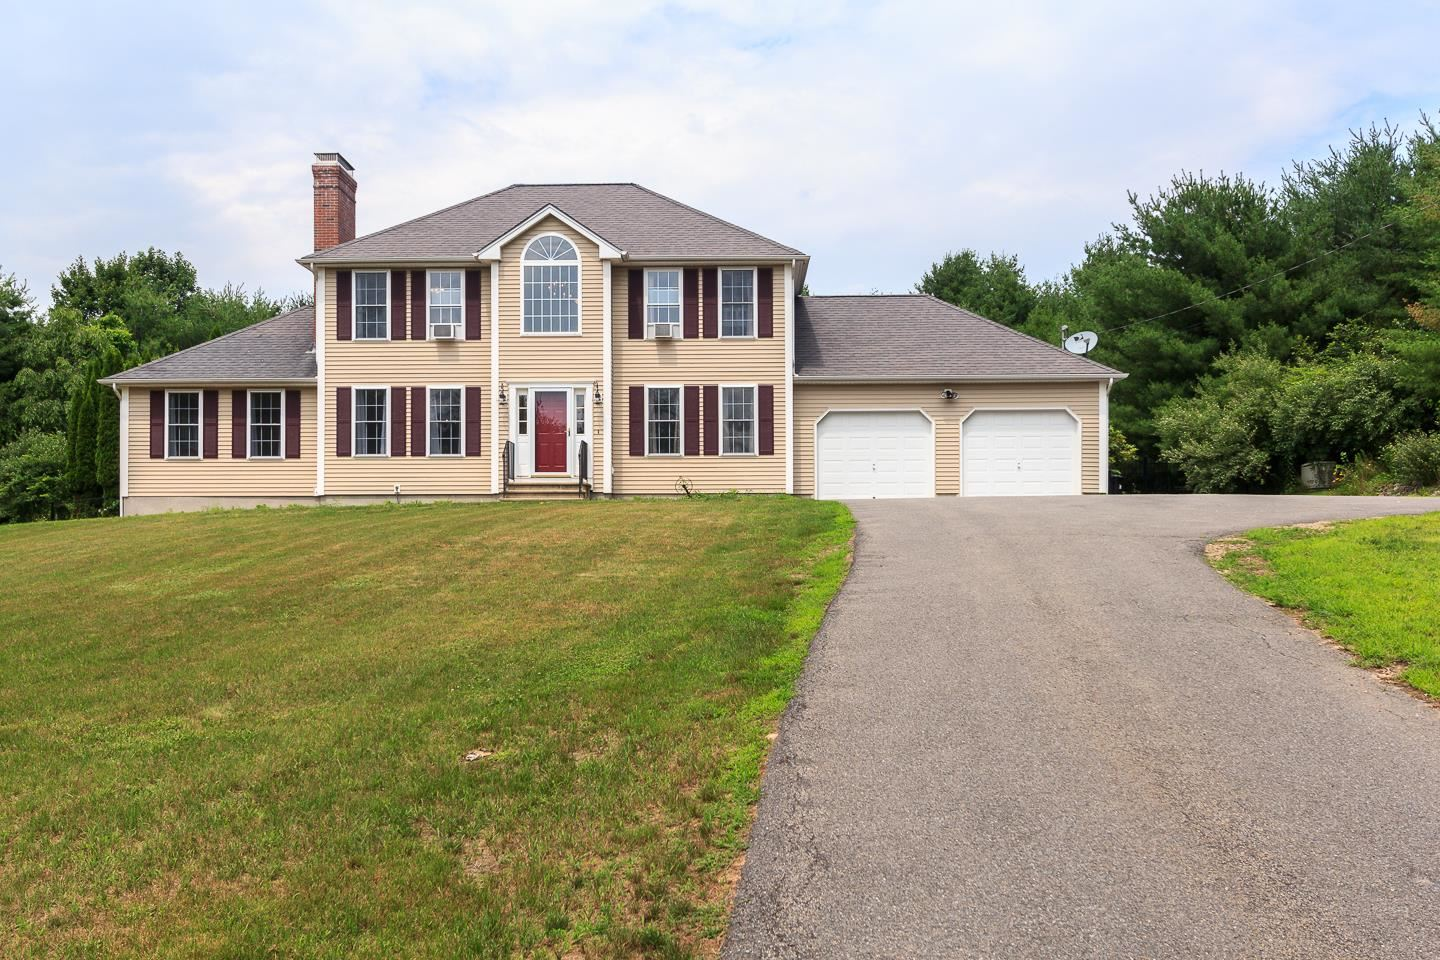 Photo of 144 Brown Road Candia NH 03034